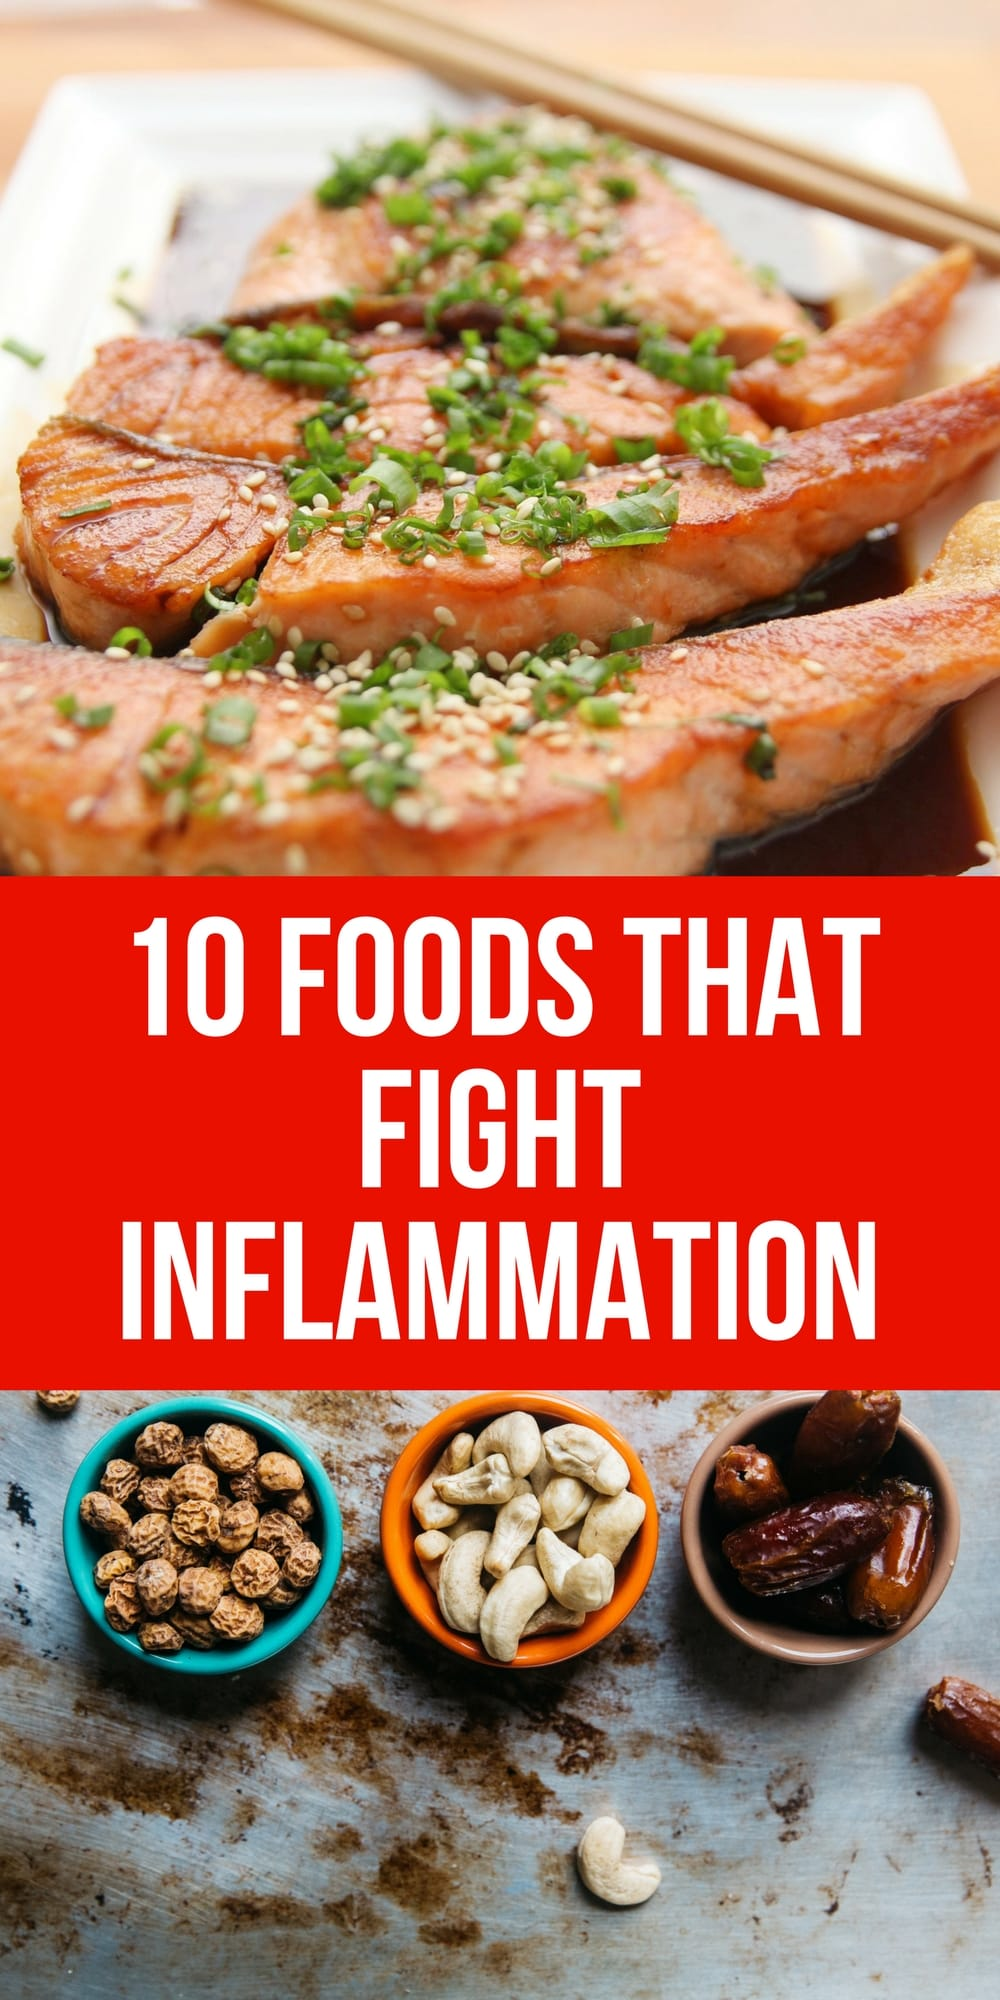 Lots of good tips and recipes for foods that fight inflammation.